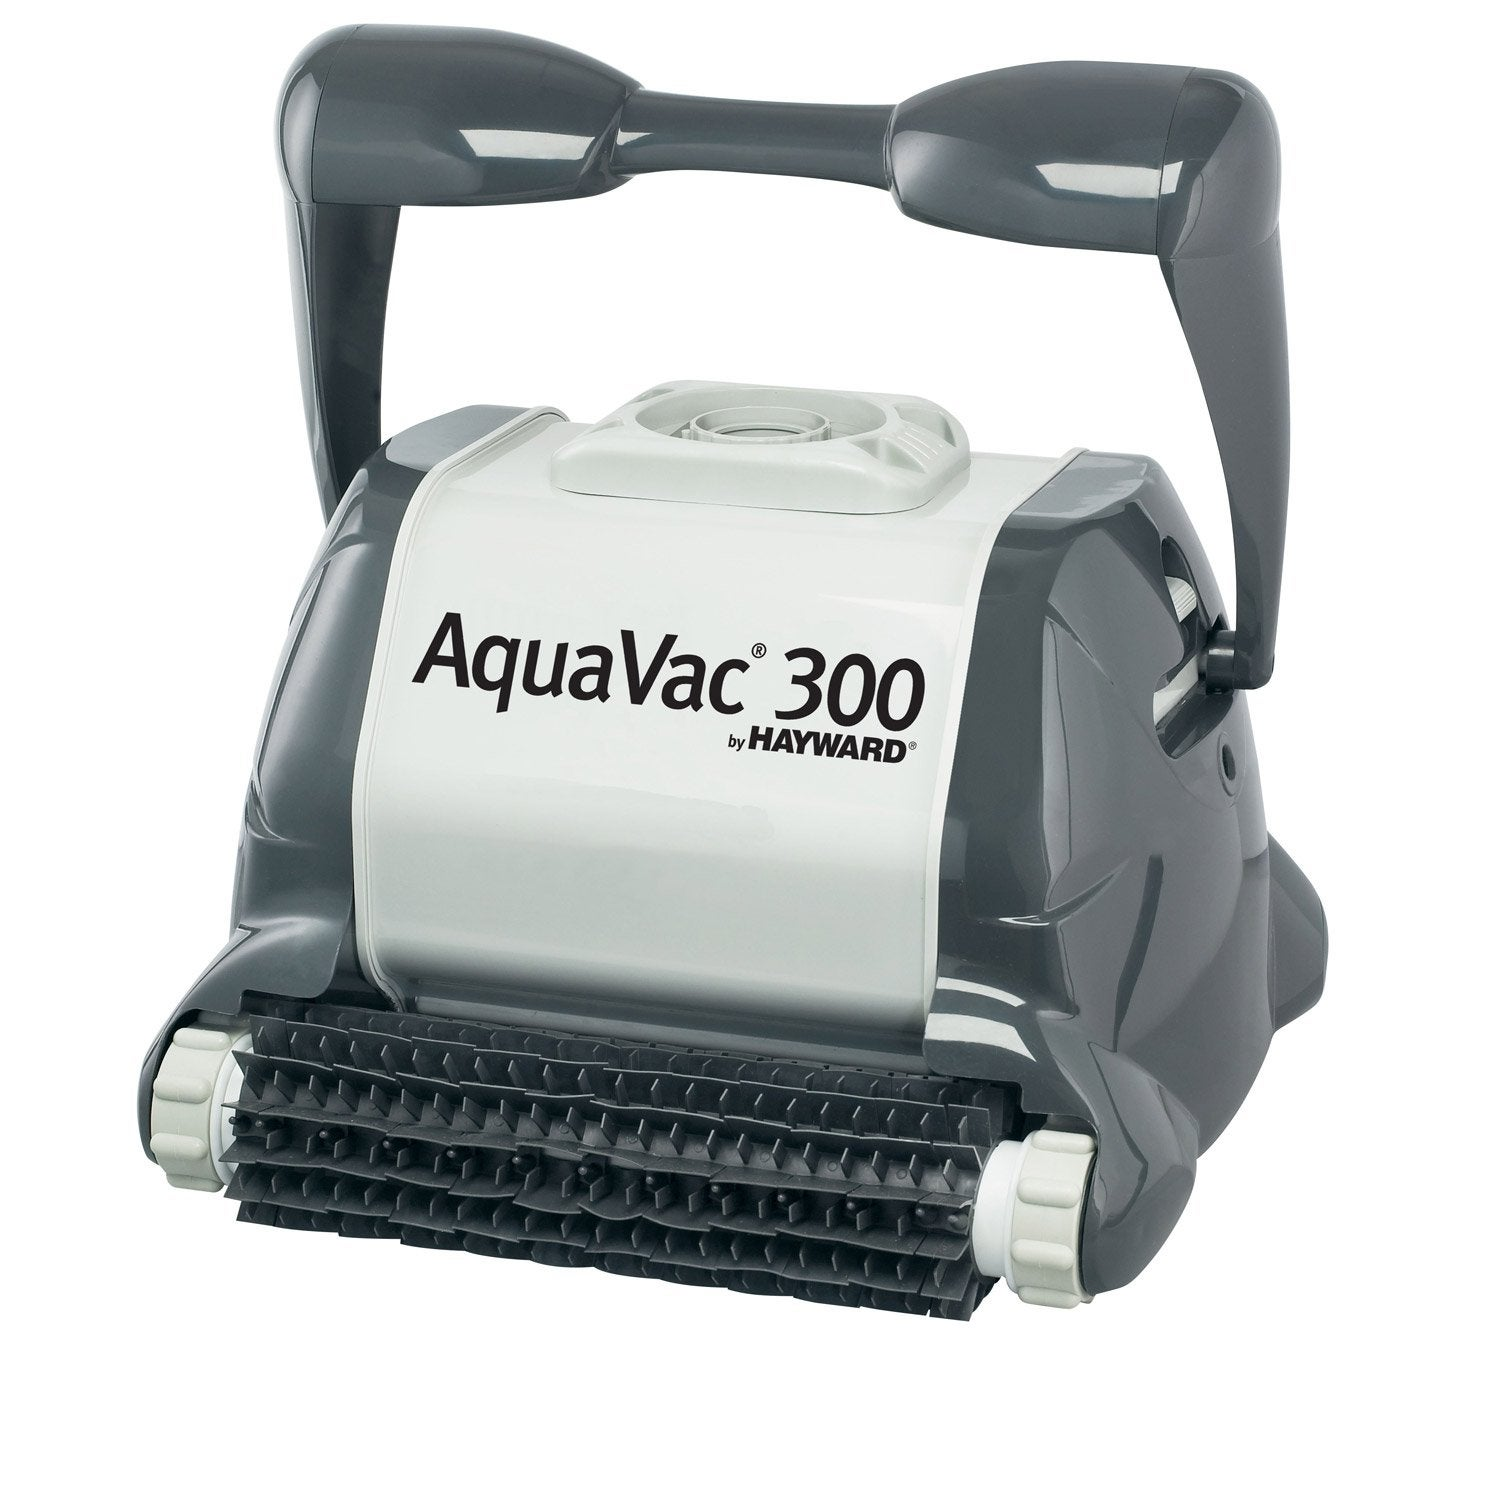 Robot de piscine lectrique hayward aquavac300 picot for Le roy merlin piscine